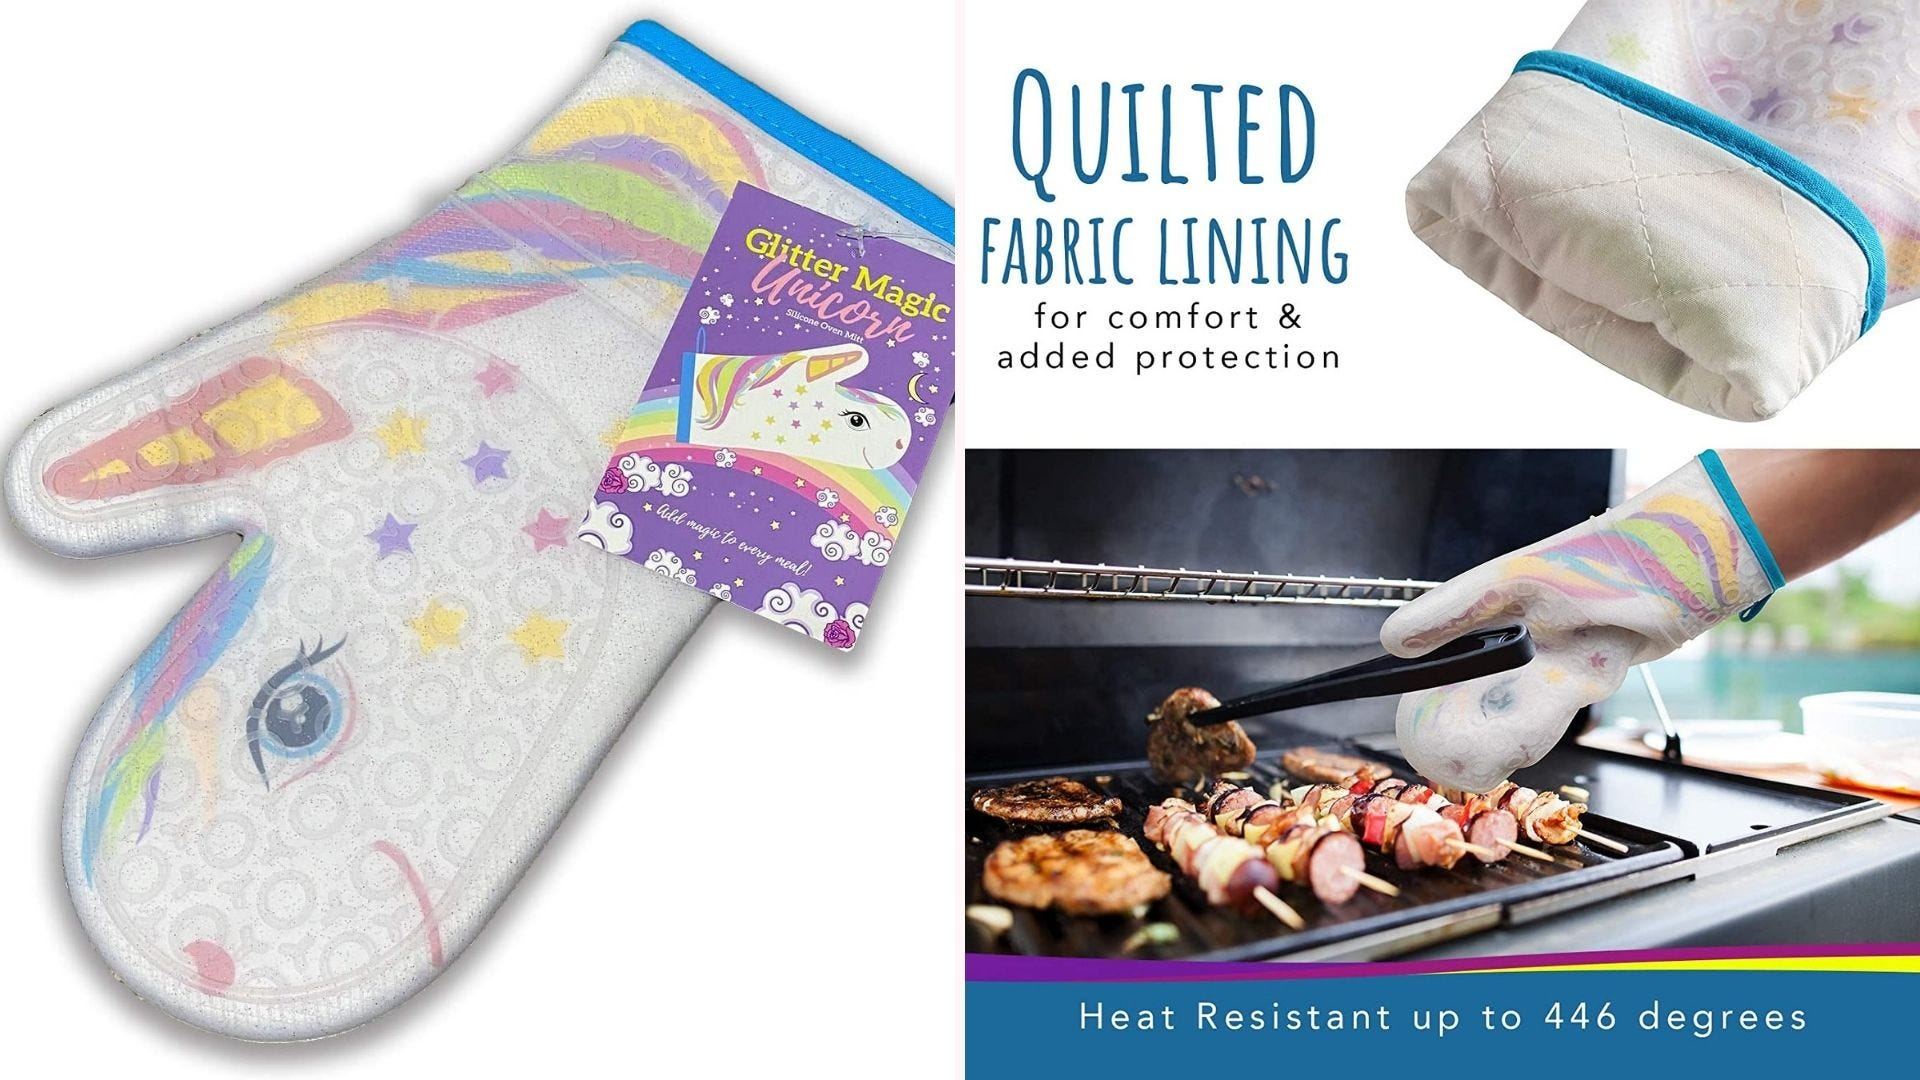 A unicorn oven mitt being used at the grill.